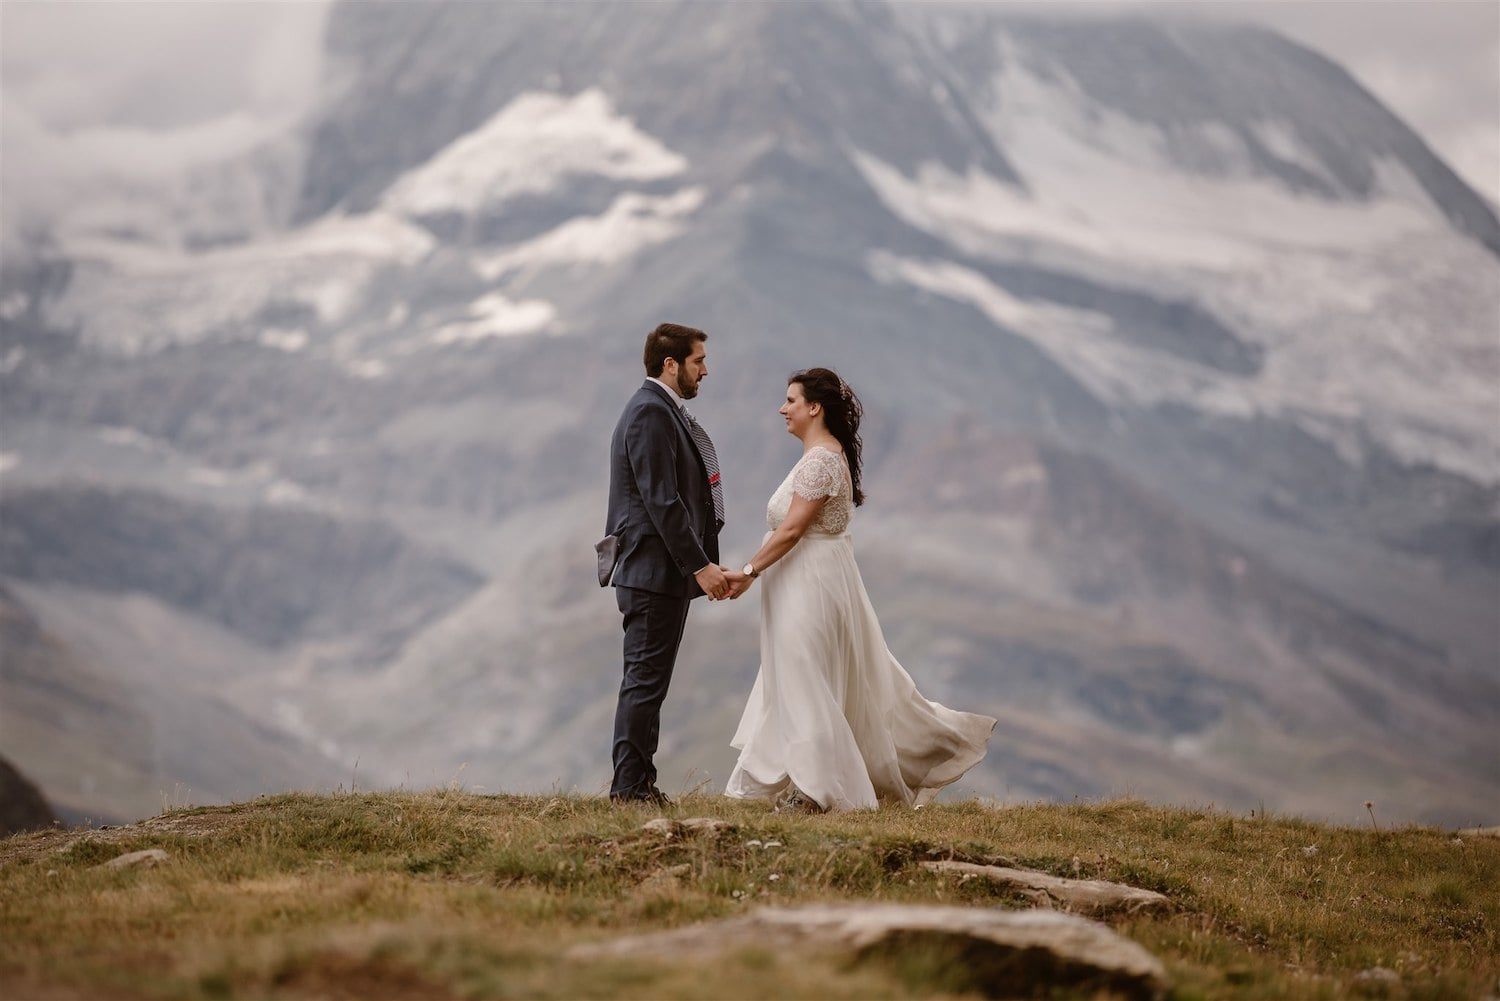 Newlyweds holing hands after their commitment ceremony in Zermatt